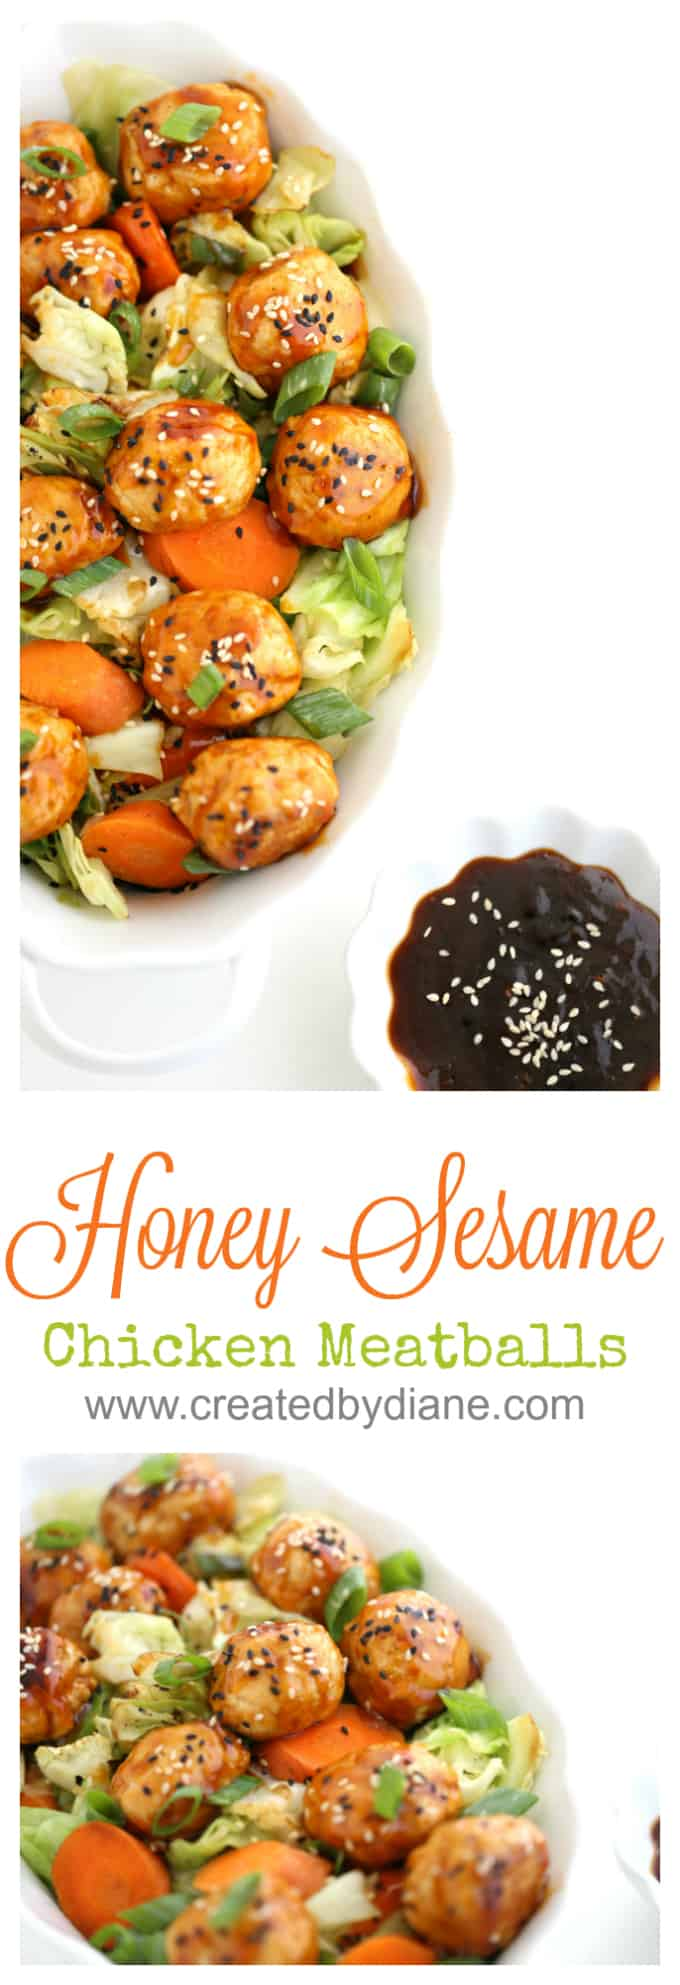 honey sesame chicken meatballs #honey #chicken www.createdbydiane.com